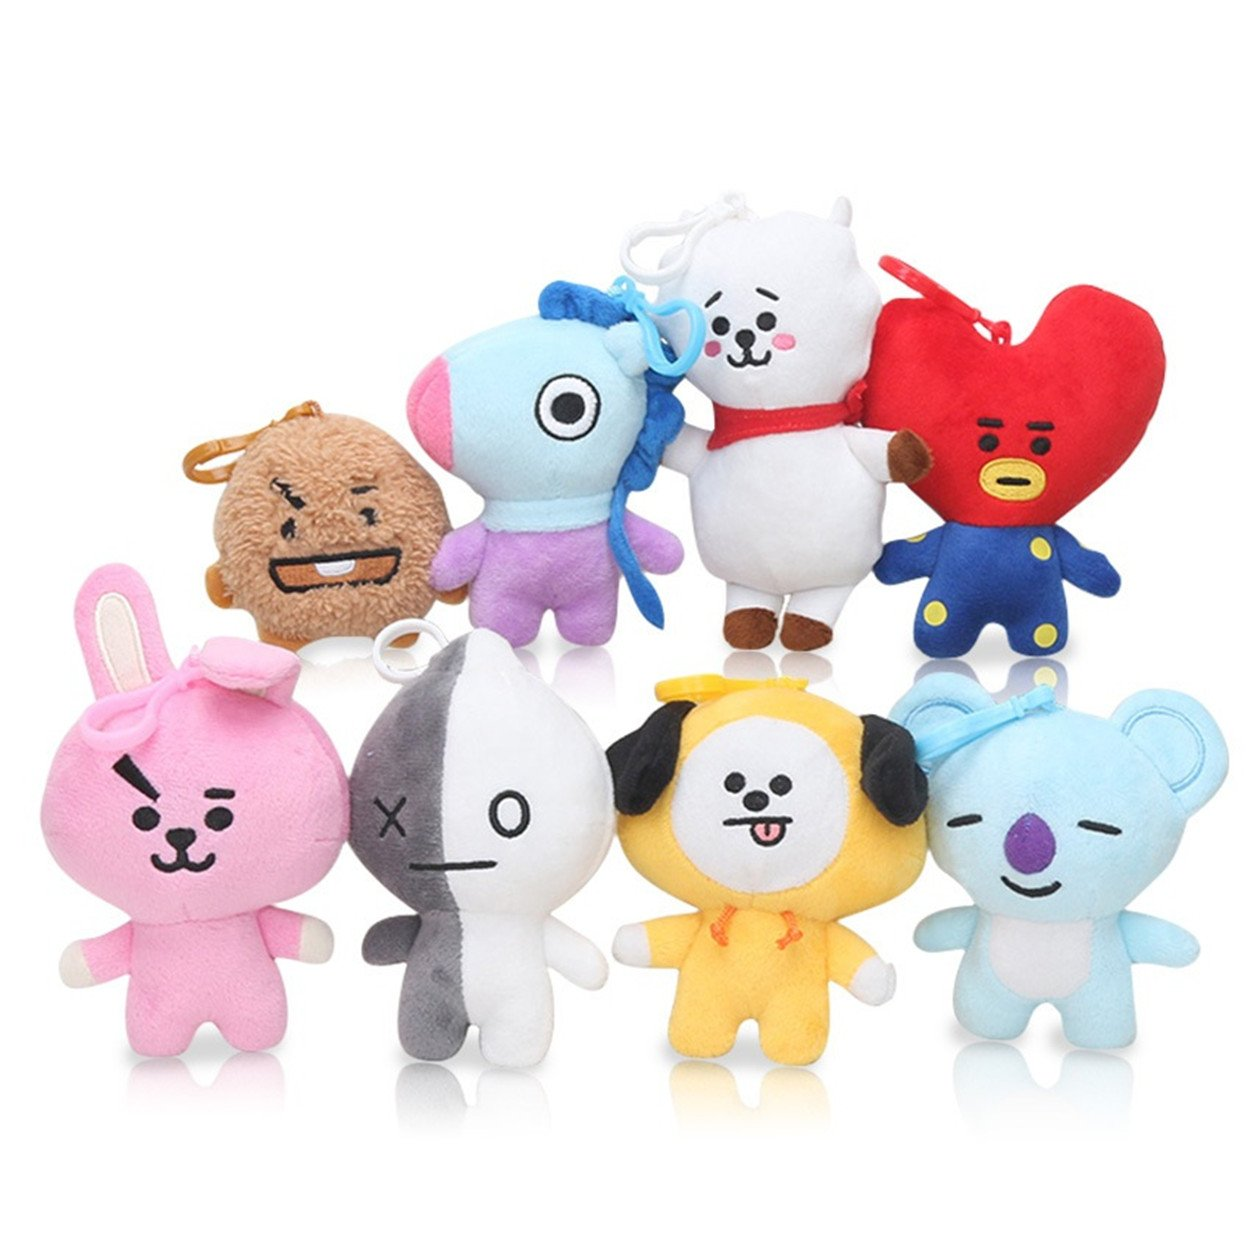 AUGYUESS 8Pcs KPOP Bangtan Boys BTS BT21 Keychain Key Ring Pendant Plush Doll Hot Gift for A.R.M.Y